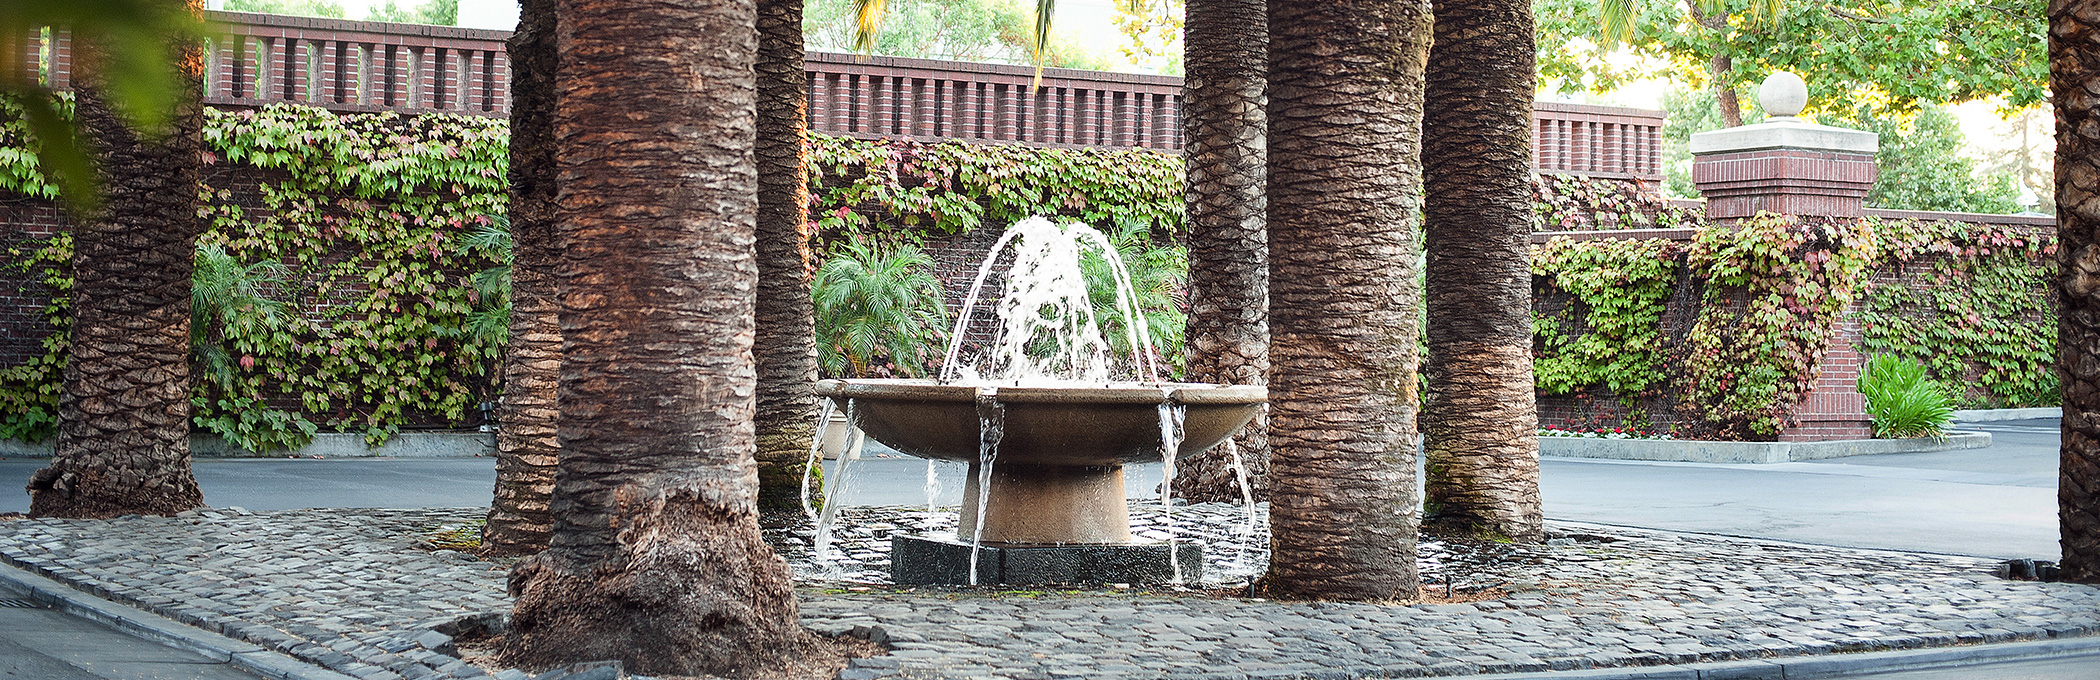 a fountain with palm trees around it